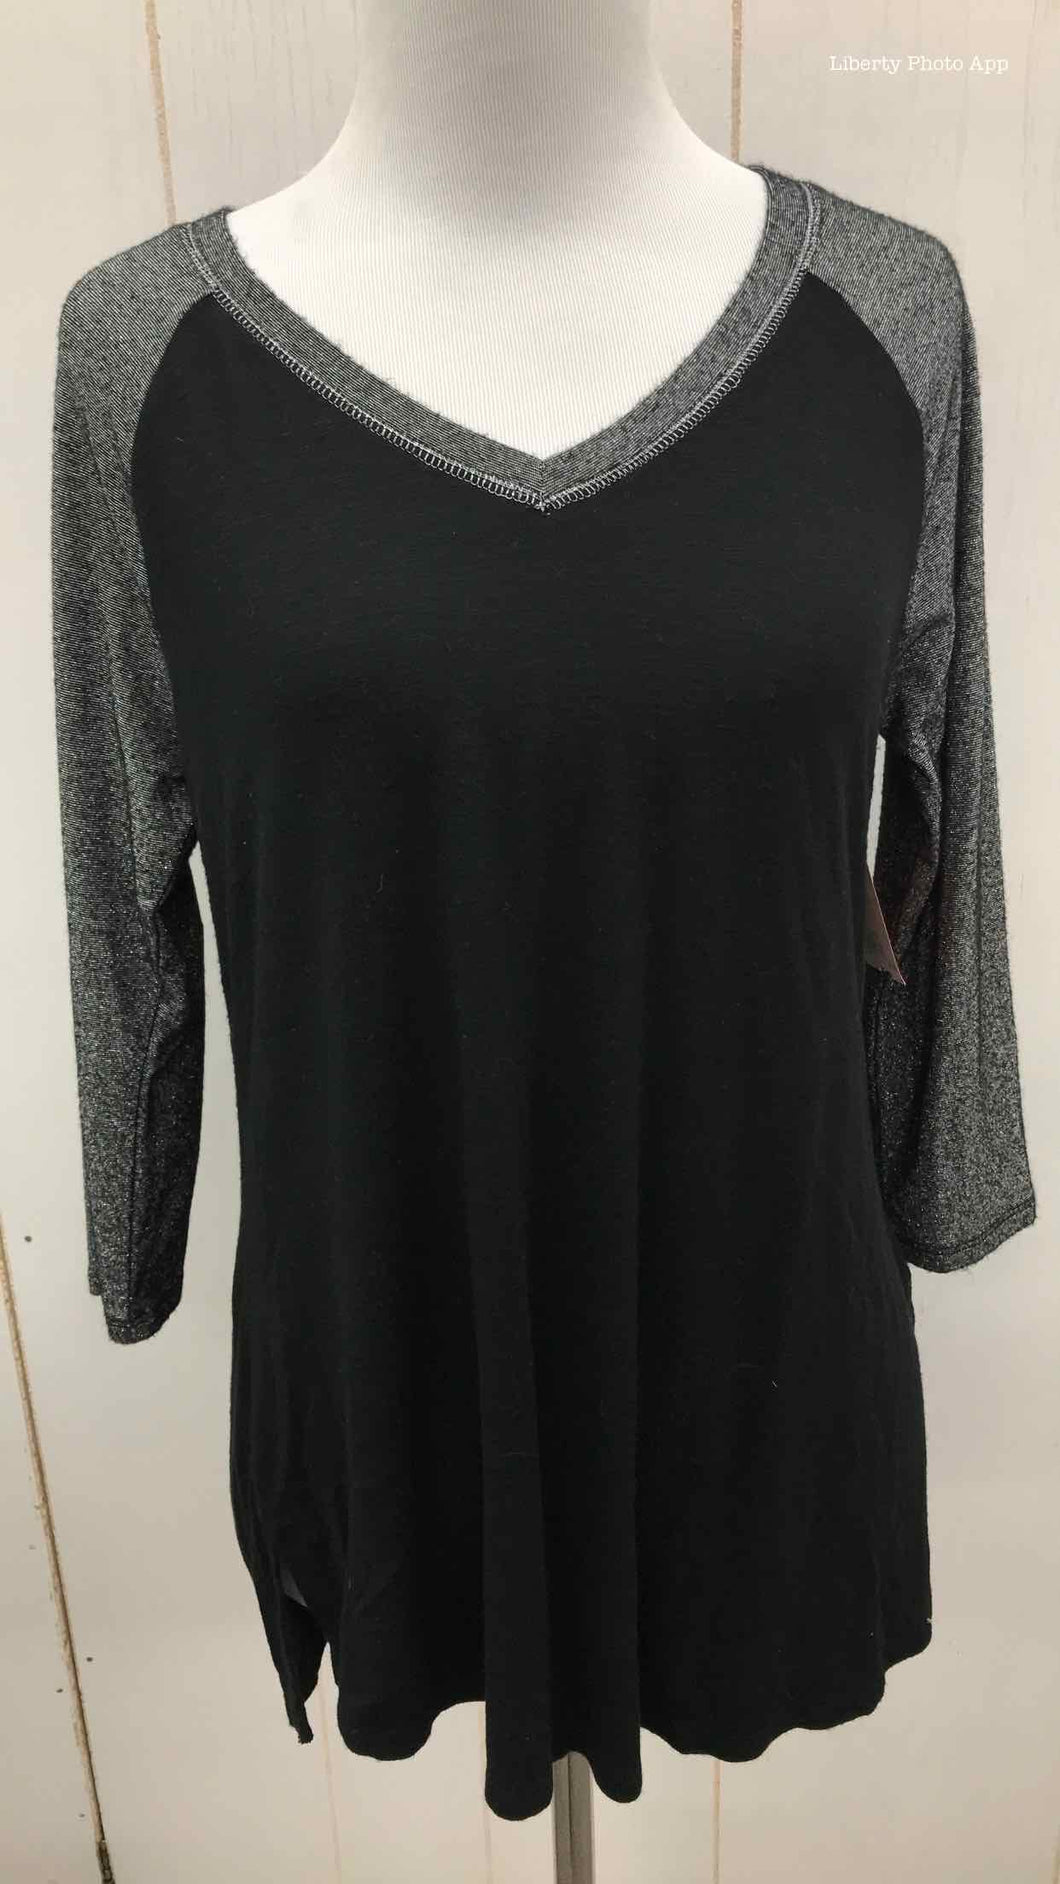 Maurices Black Womens Size Small Shirt